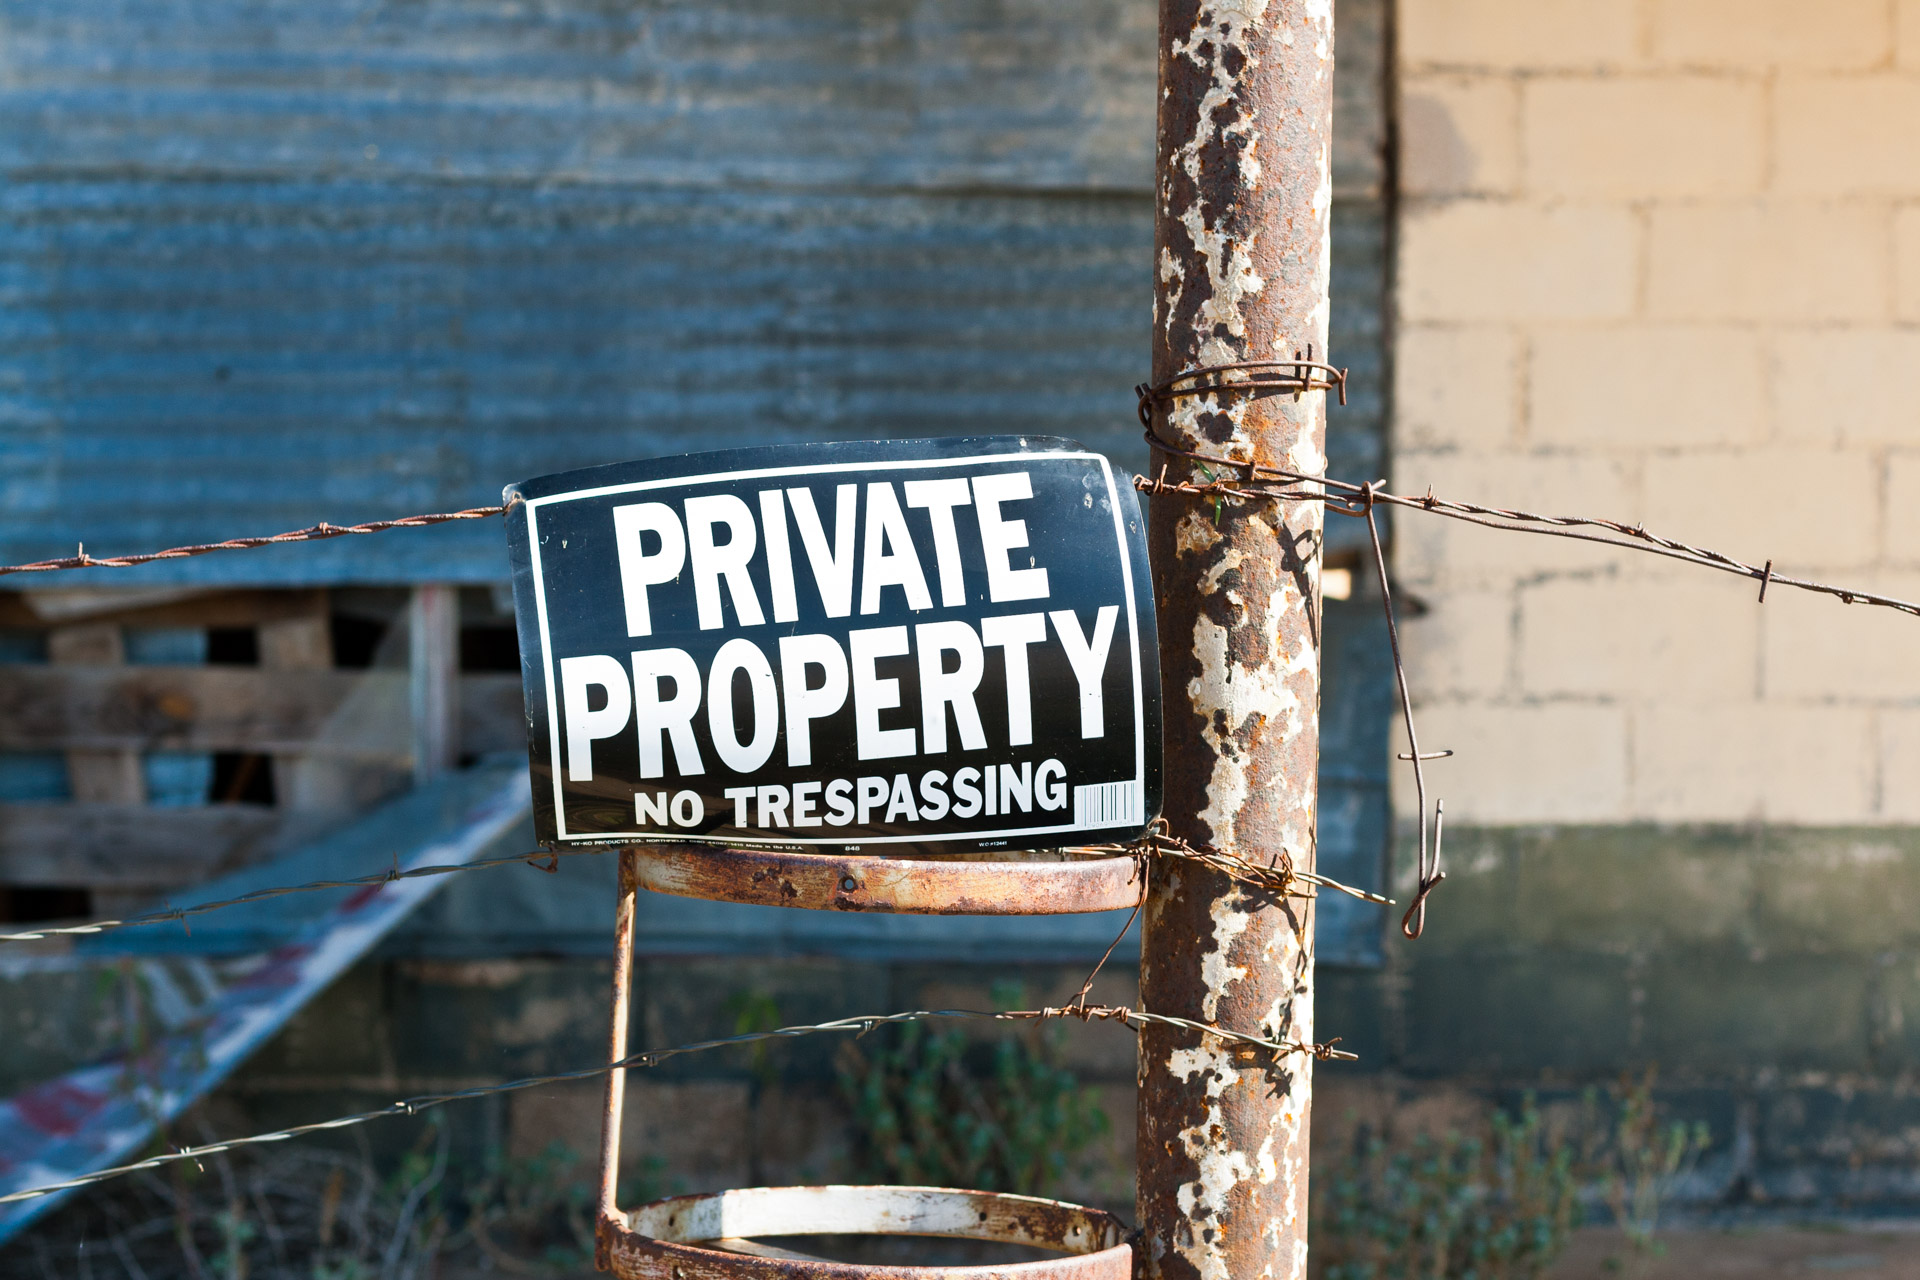 Talpa, Texas - The Falling Tin Store (private property sign)